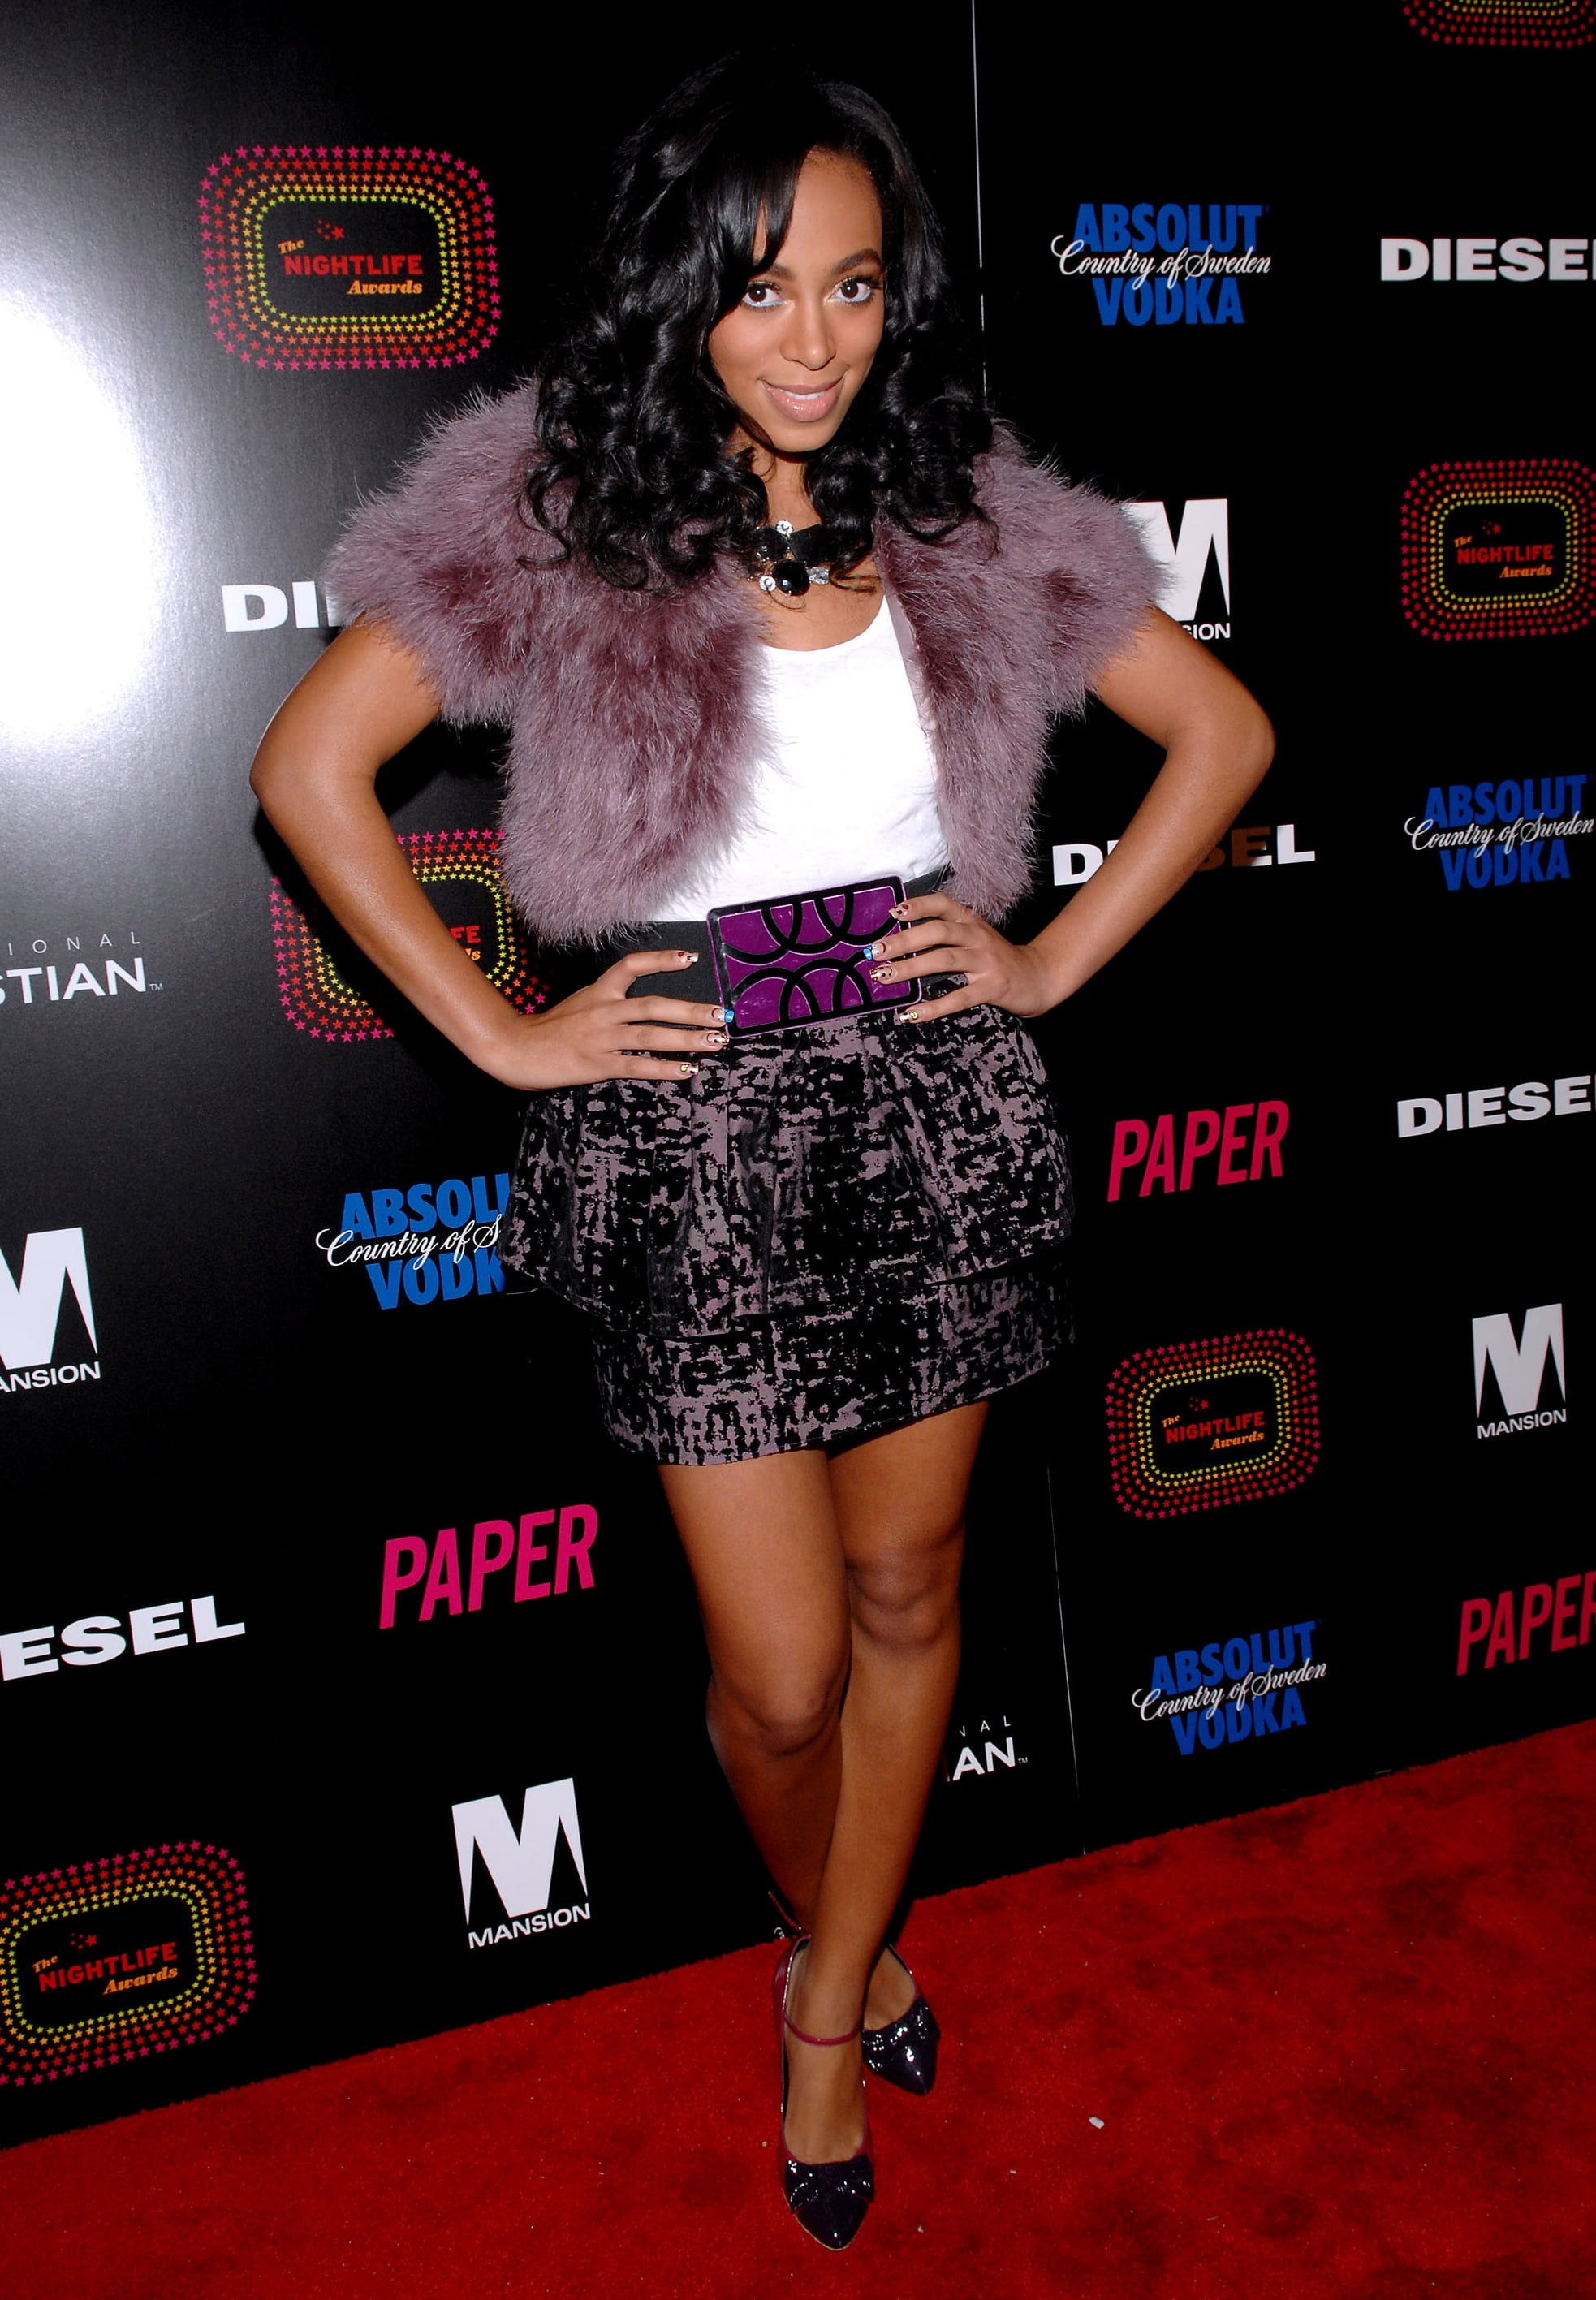 For the fourth annual Nightlife Awards, Knowles stepped out in a printed miniskirt, purple fur shrug, and a coordinating belt.